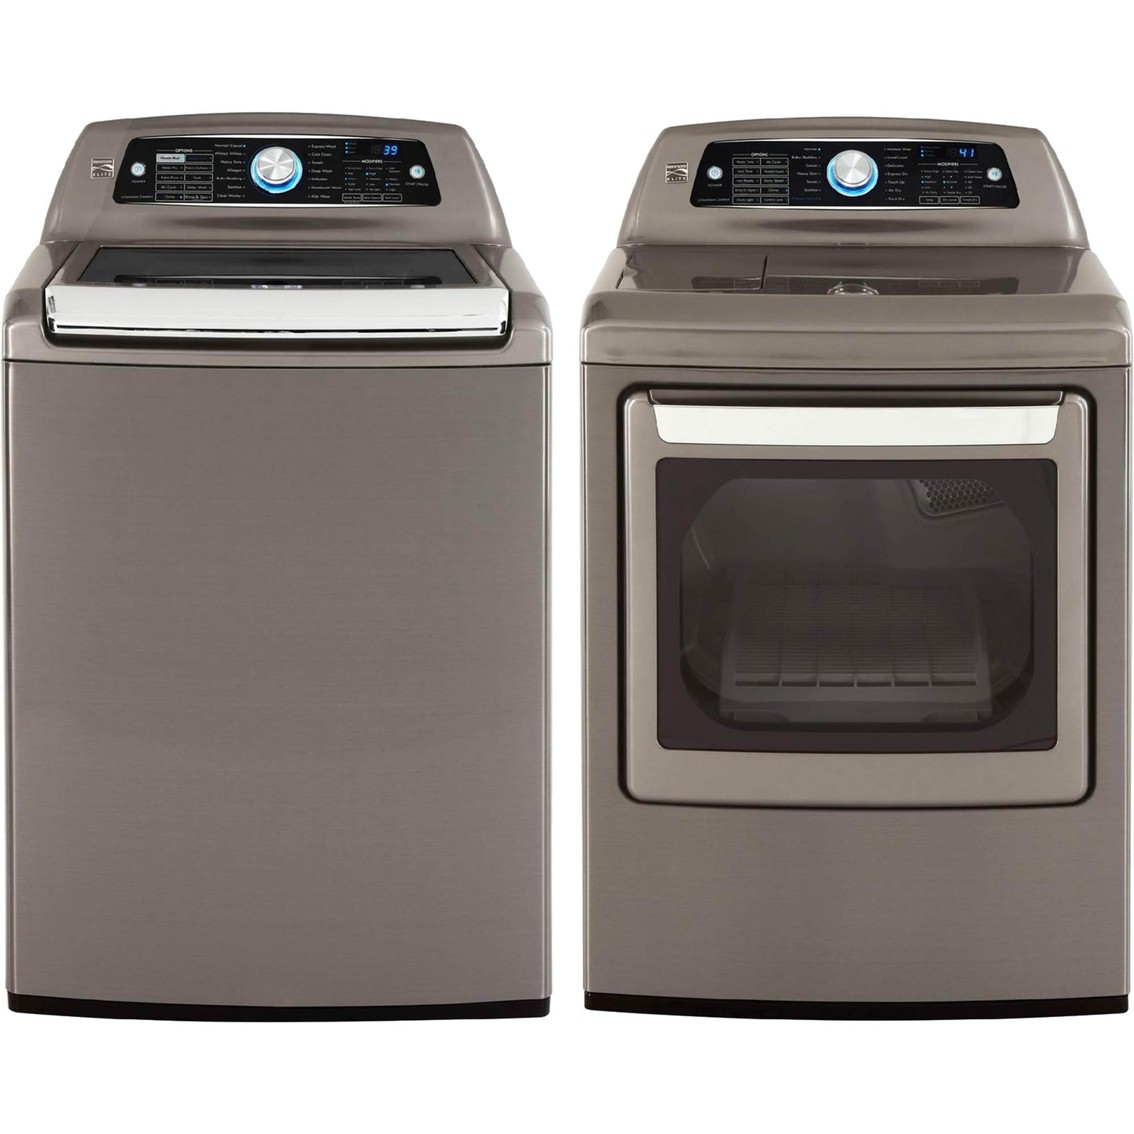 Kenmore Elite 5 2 Cu Ft Washer And 7 3 Cu Ft Electric